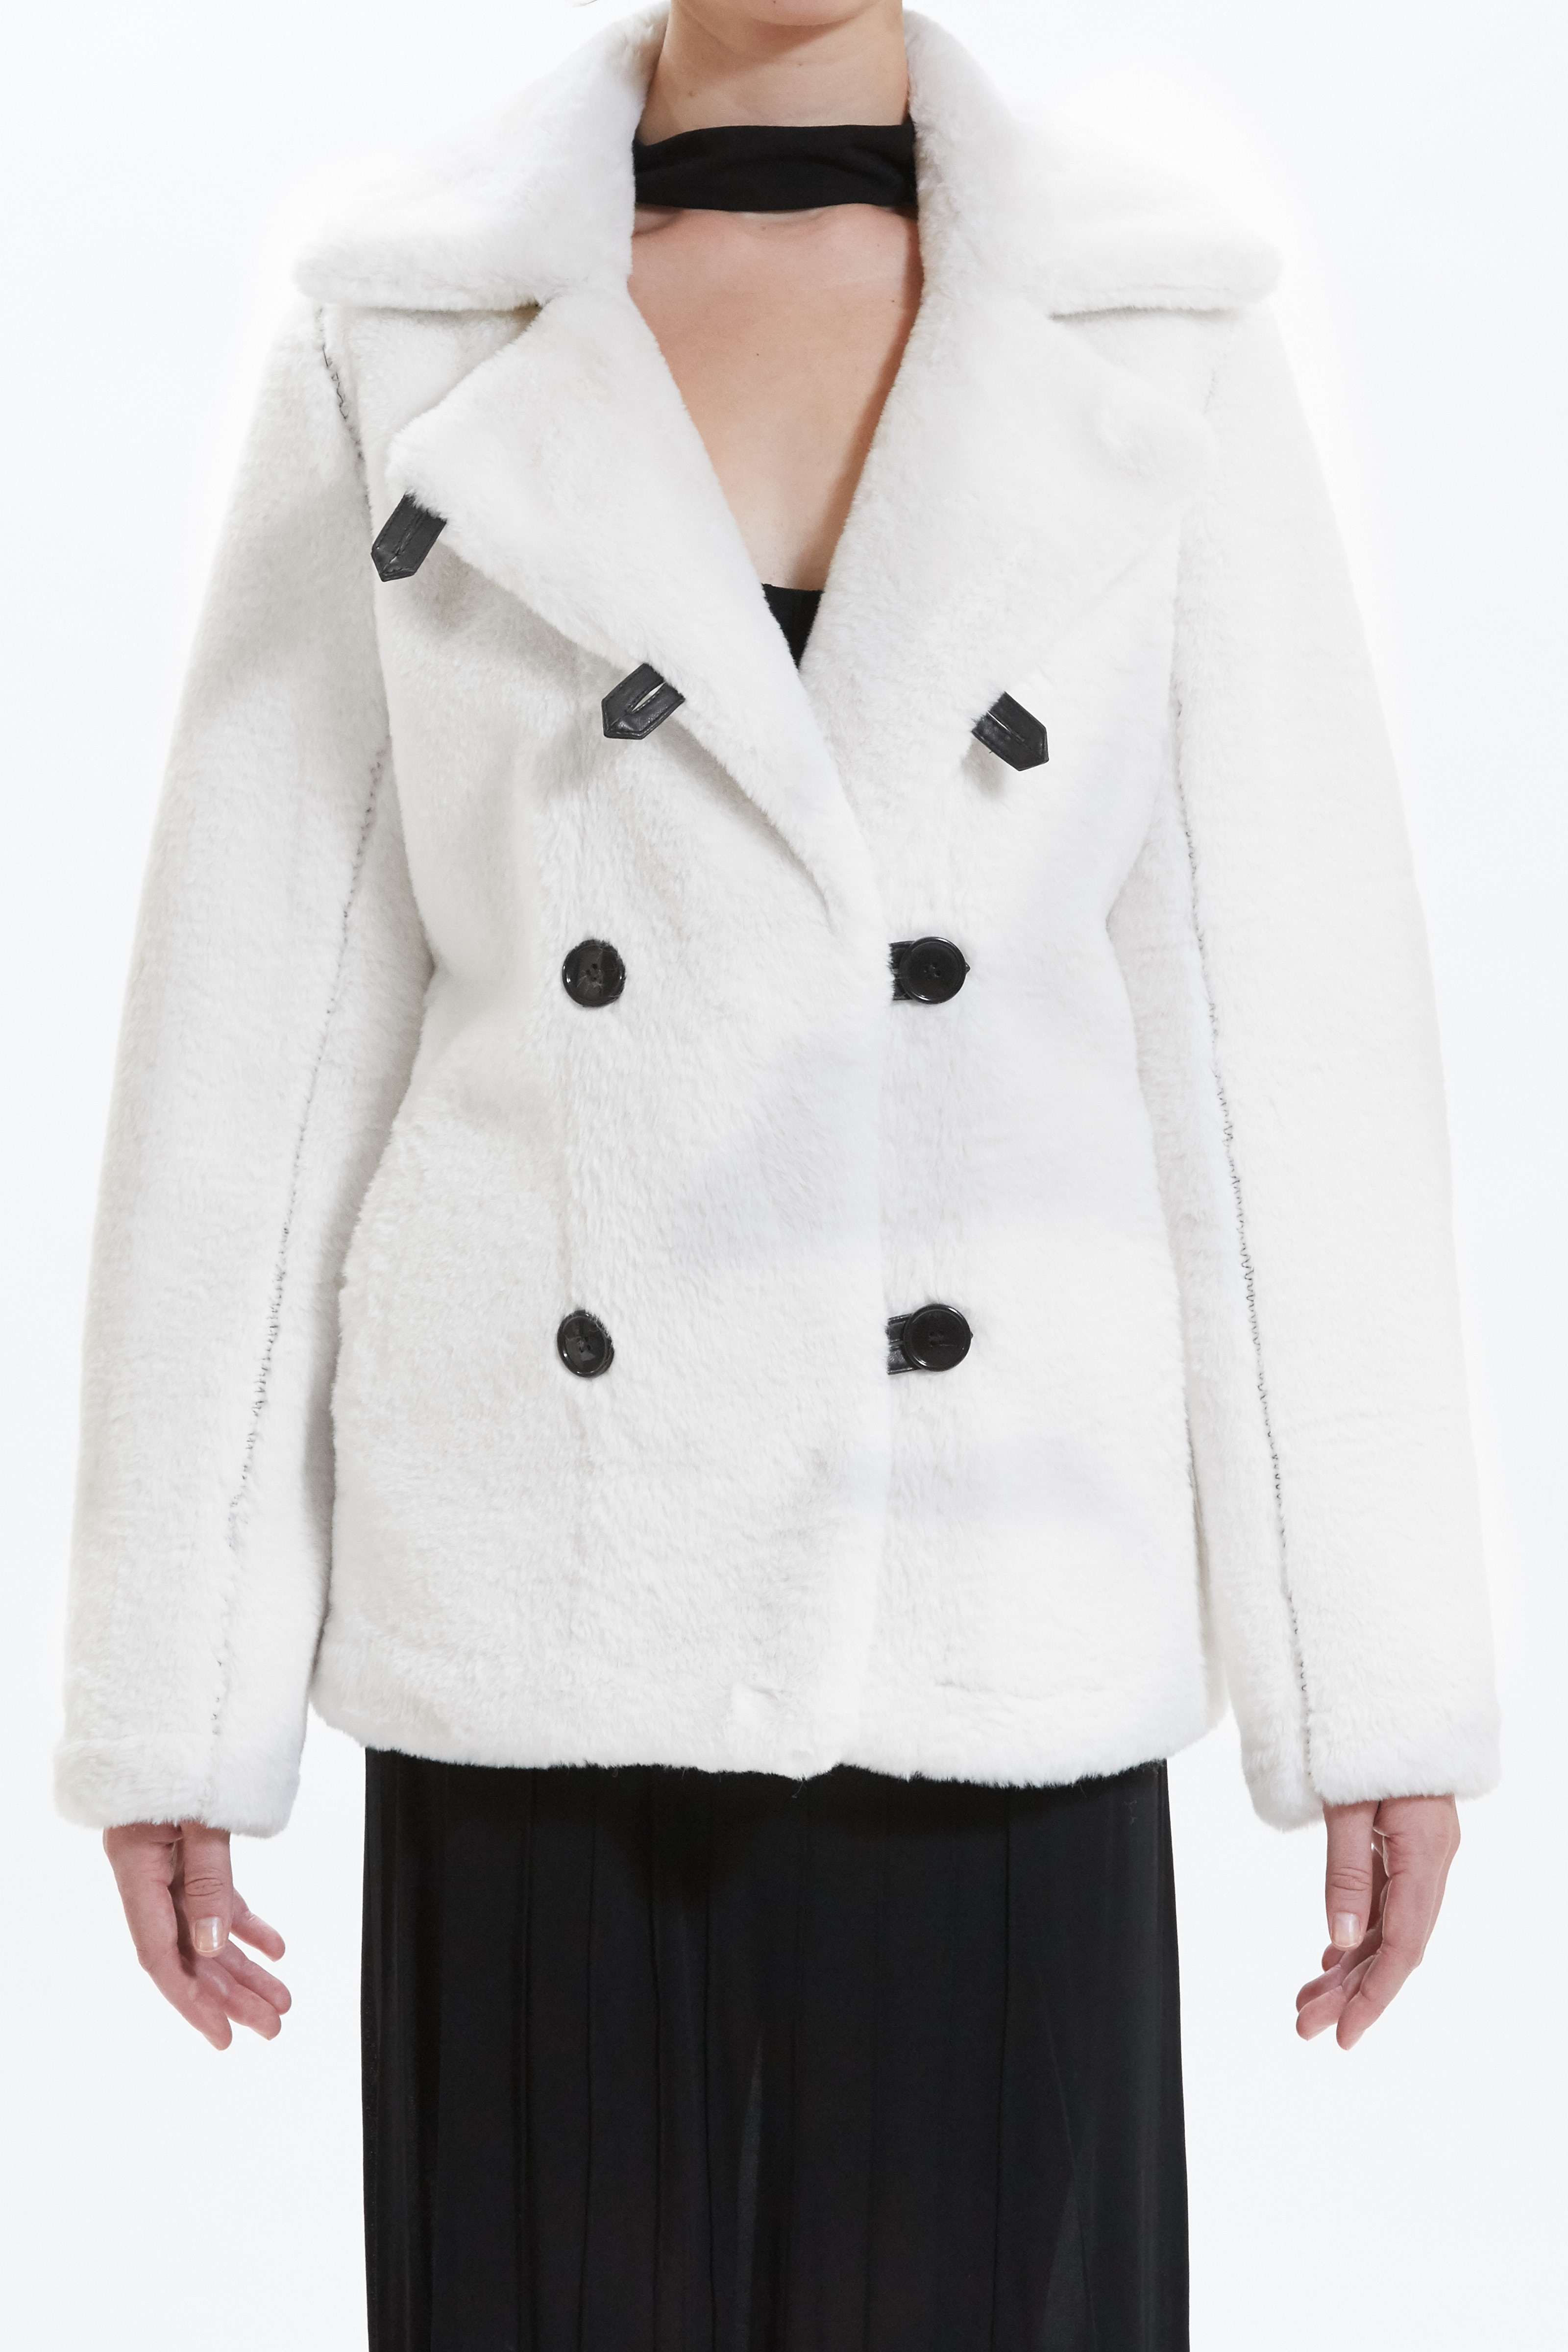 Colette - Blanc Minque by Maison Atia on curated-crowd.com